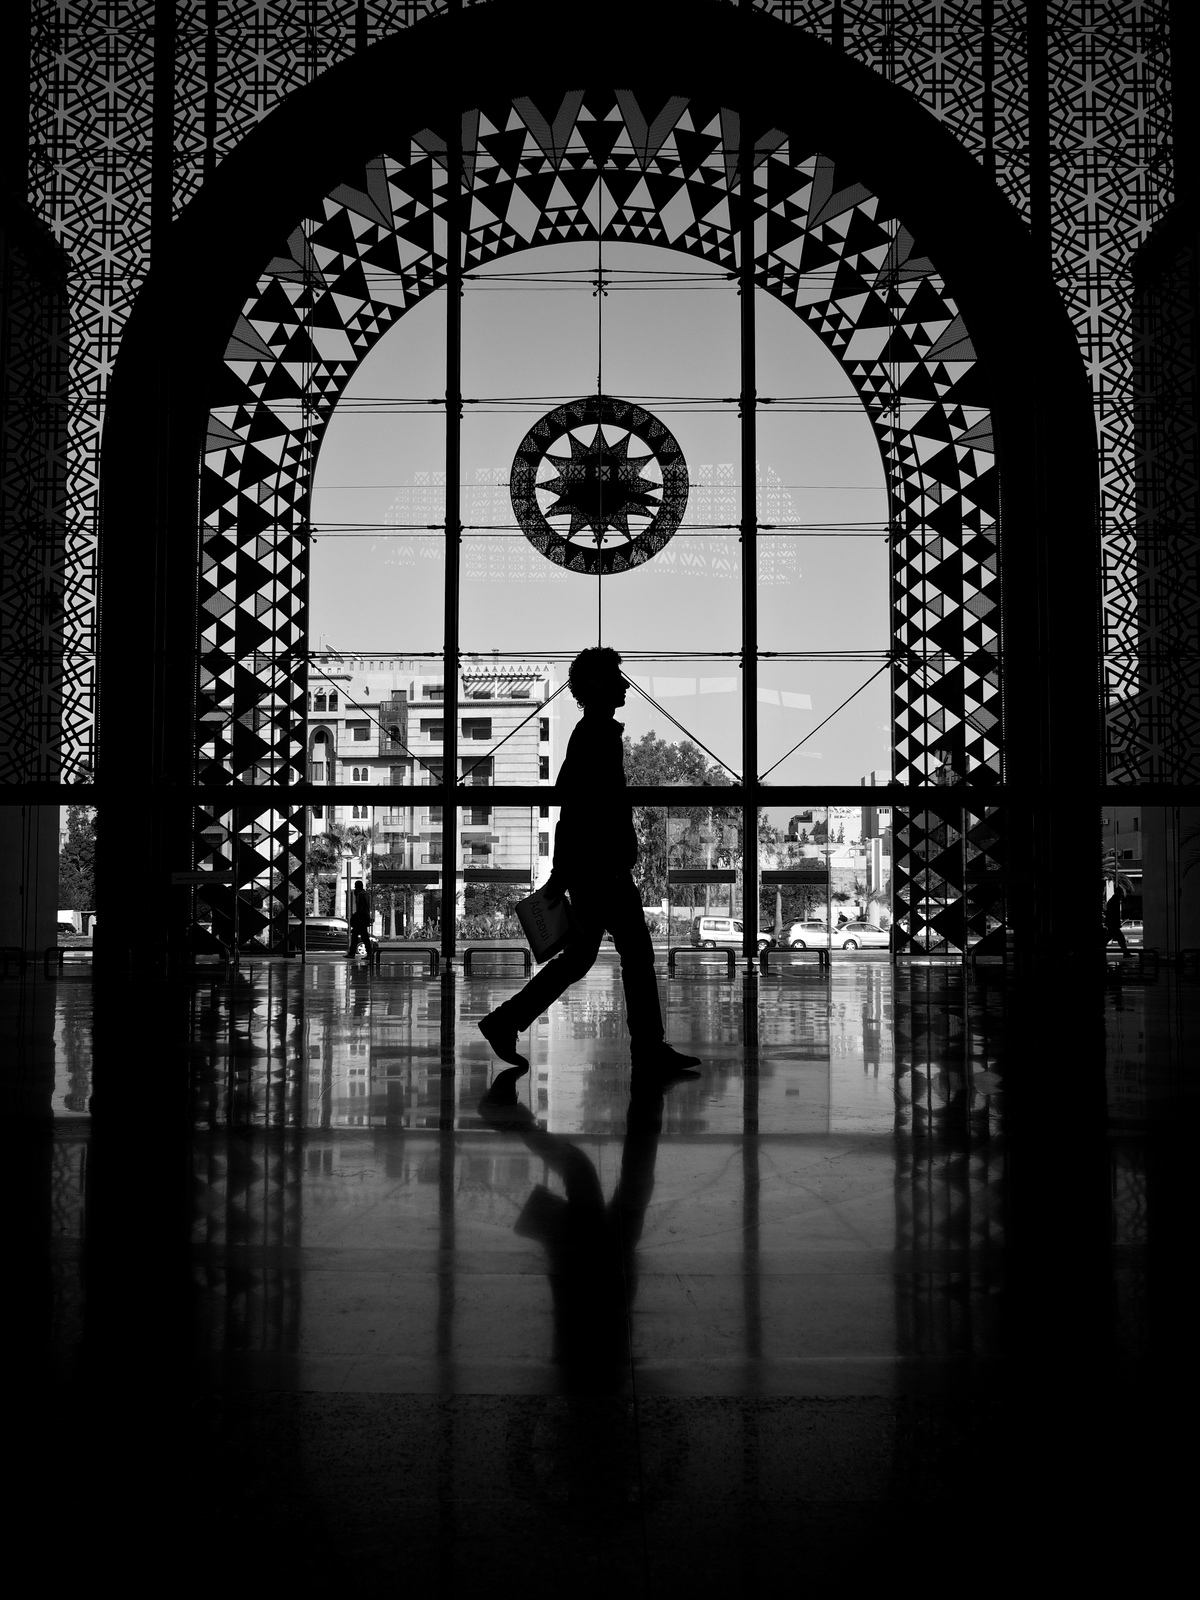 Traveler's Silhouette in the Marrakech Railway Station